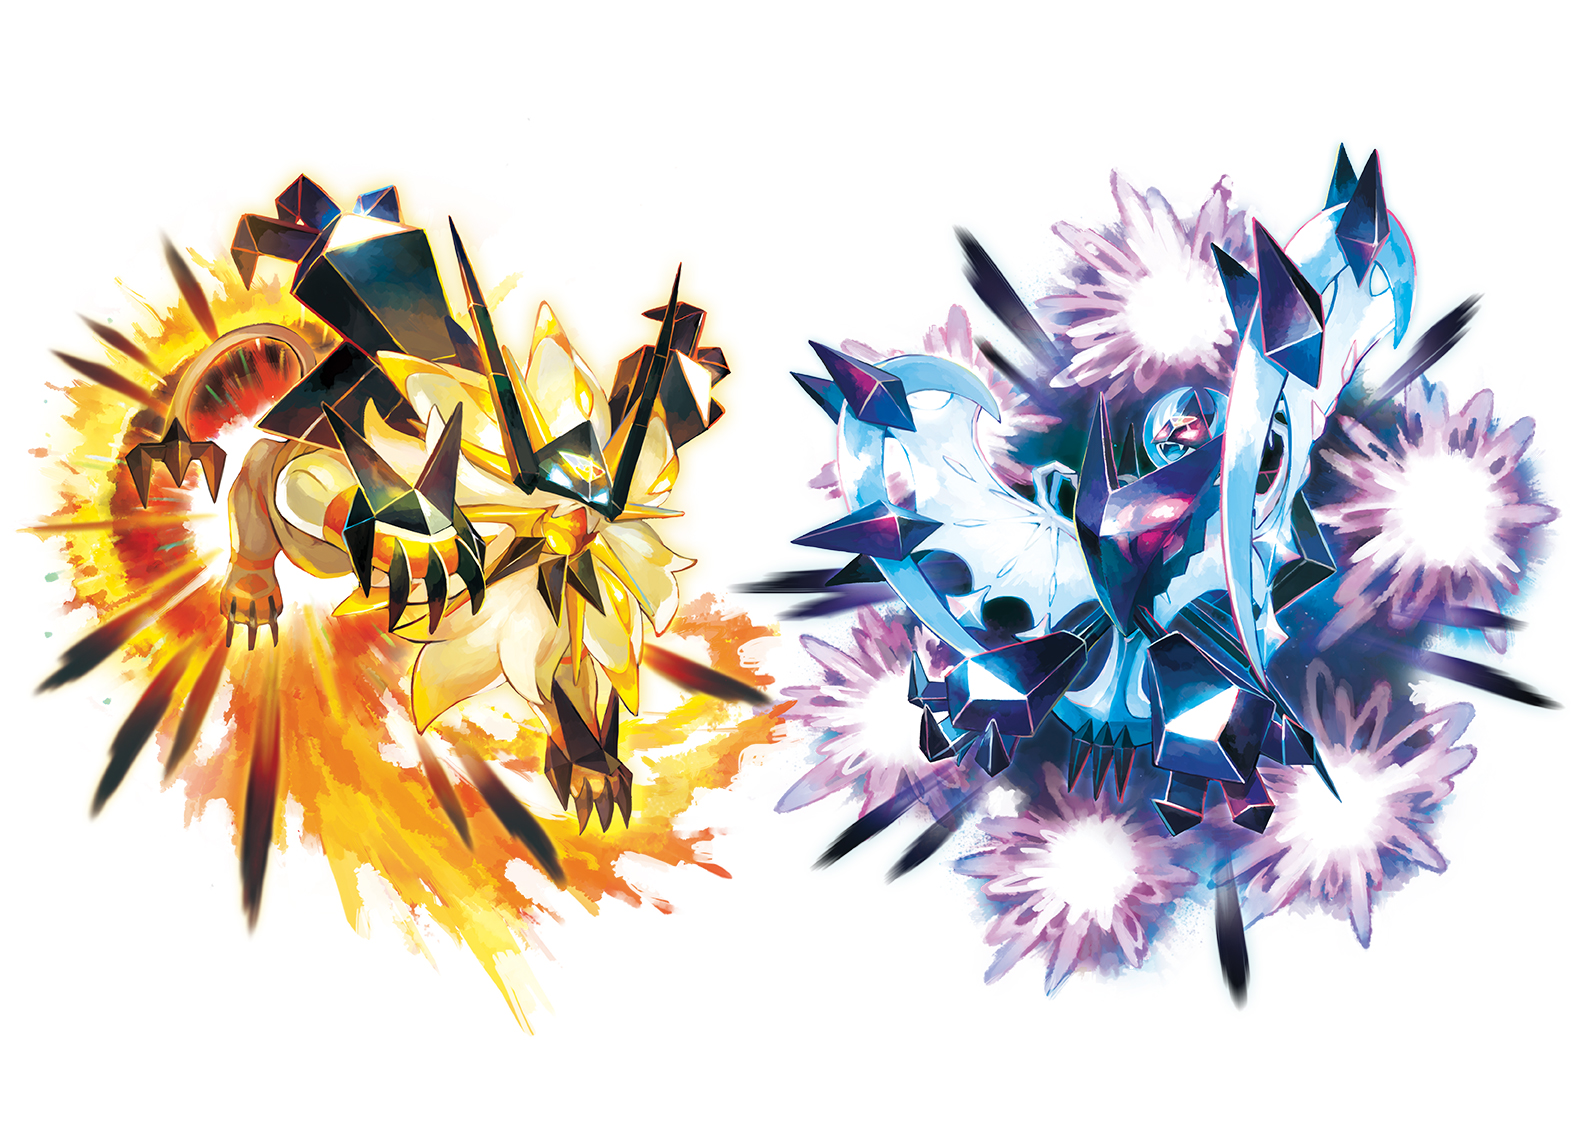 Pokemon ultra sunultra moon details necrozma z moves new rotom following up on todays new trailers the pokemon company and nintendo have sent out new information about necrozma new z moves and new rotom dex features buycottarizona Gallery